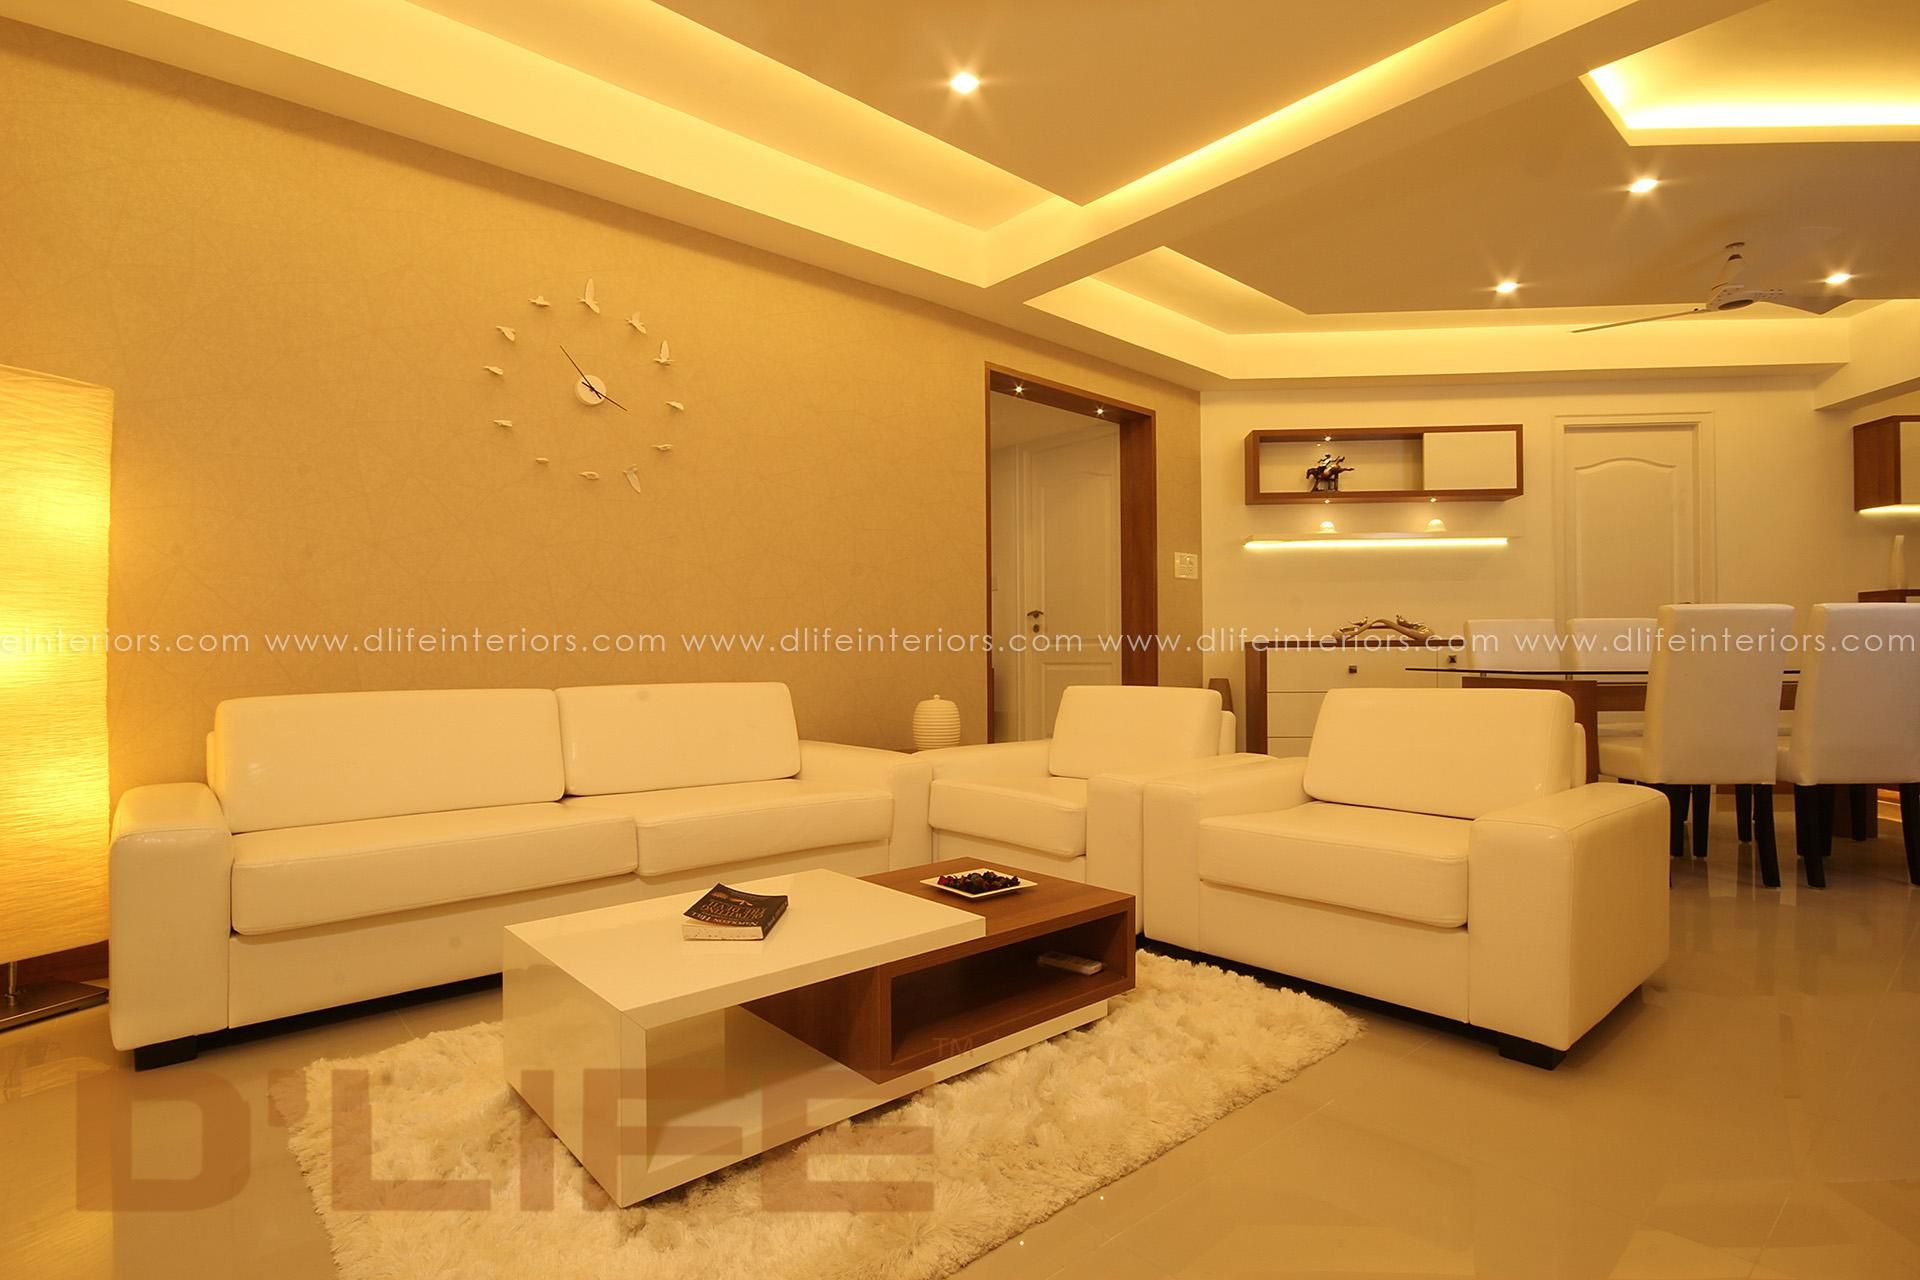 Celebrity Home Interiors At Cochin Designed Executed By DLIFE